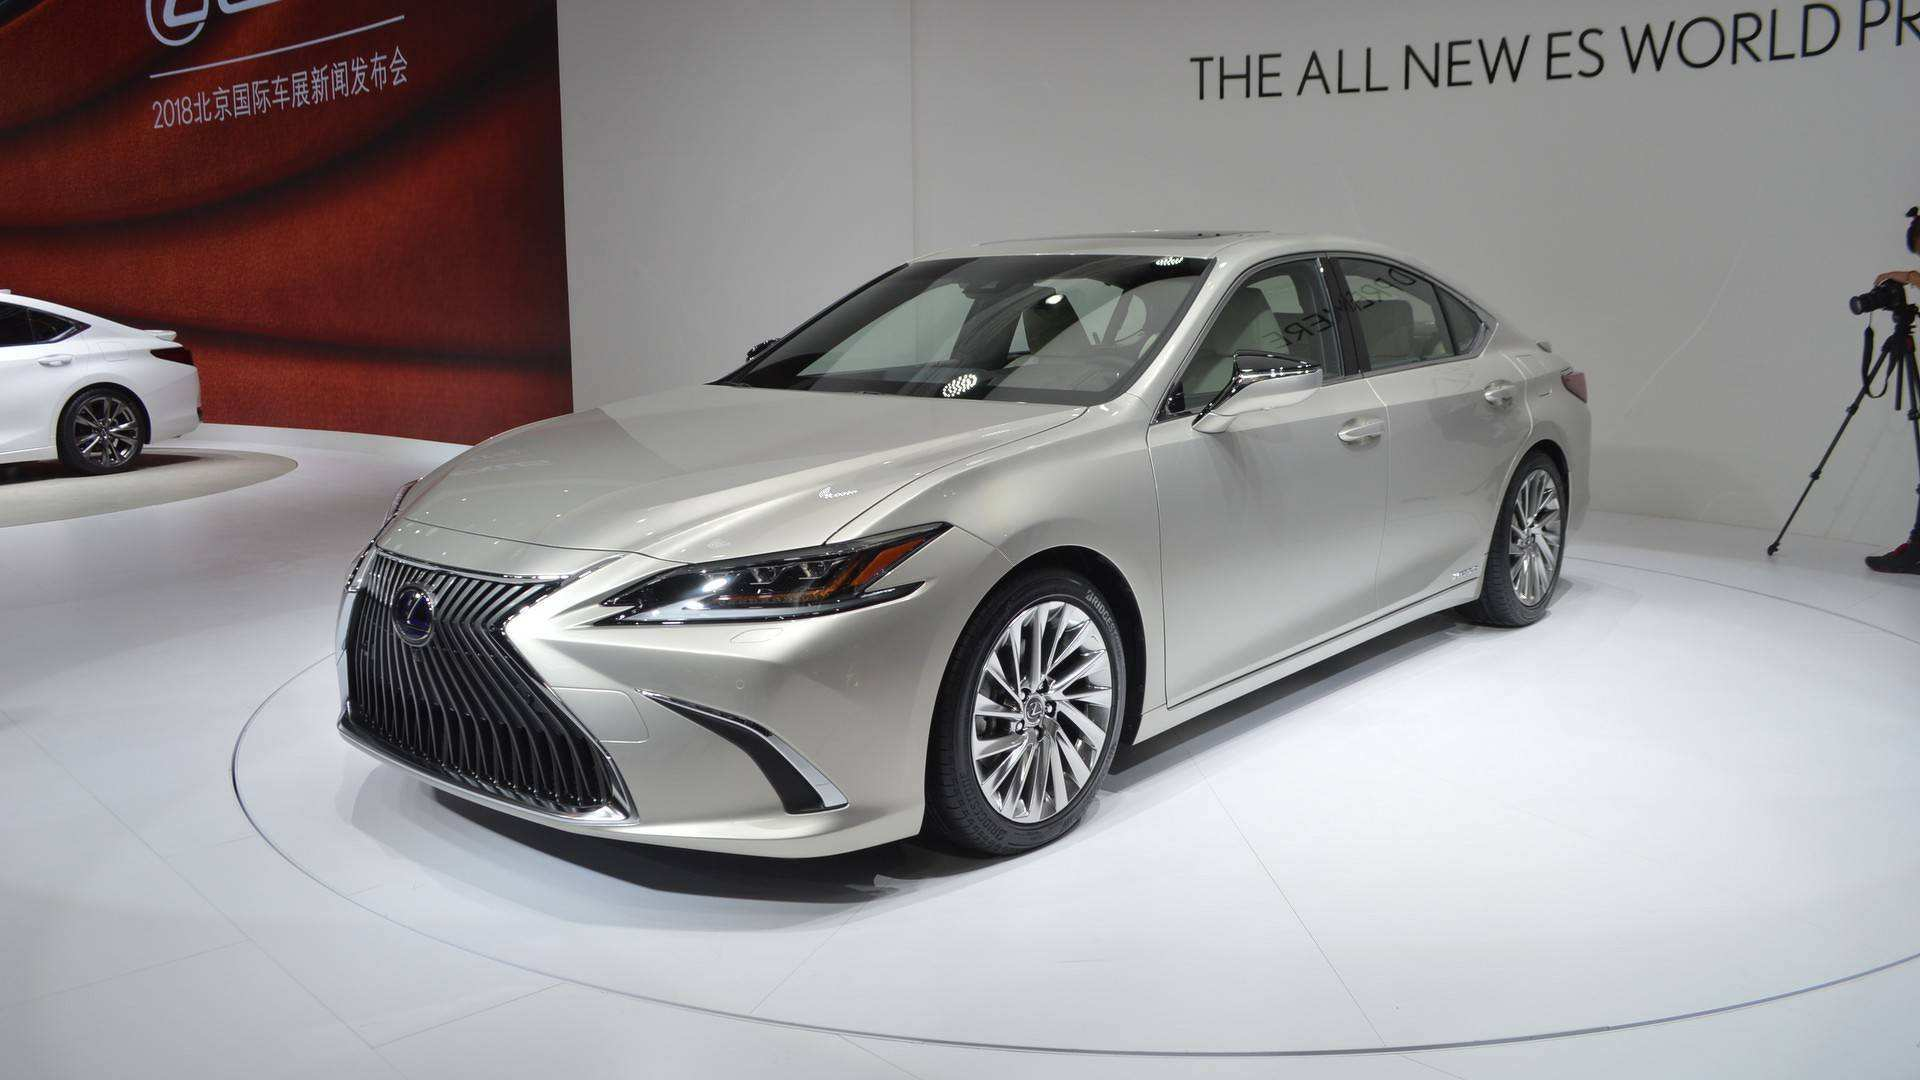 93 Concept of Are The 2019 Lexus Out Yet Review with Are The 2019 Lexus Out Yet